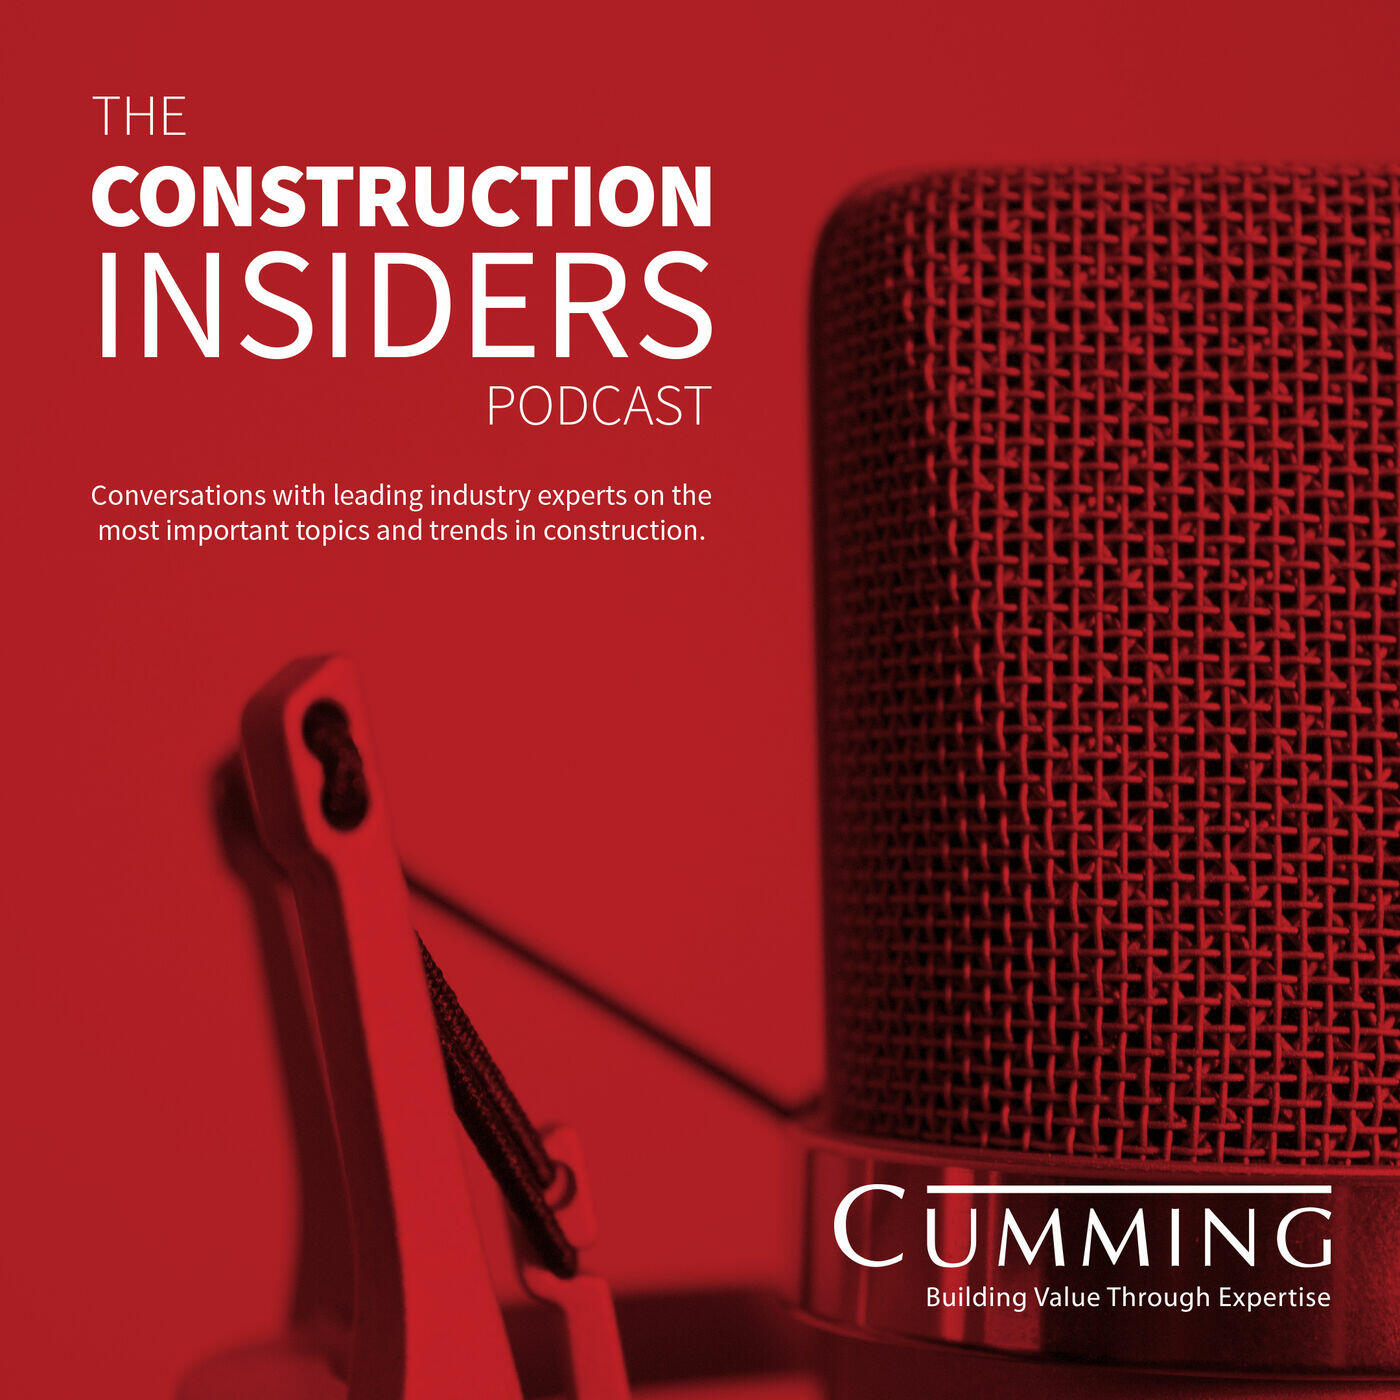 The Construction Insiders Podcast